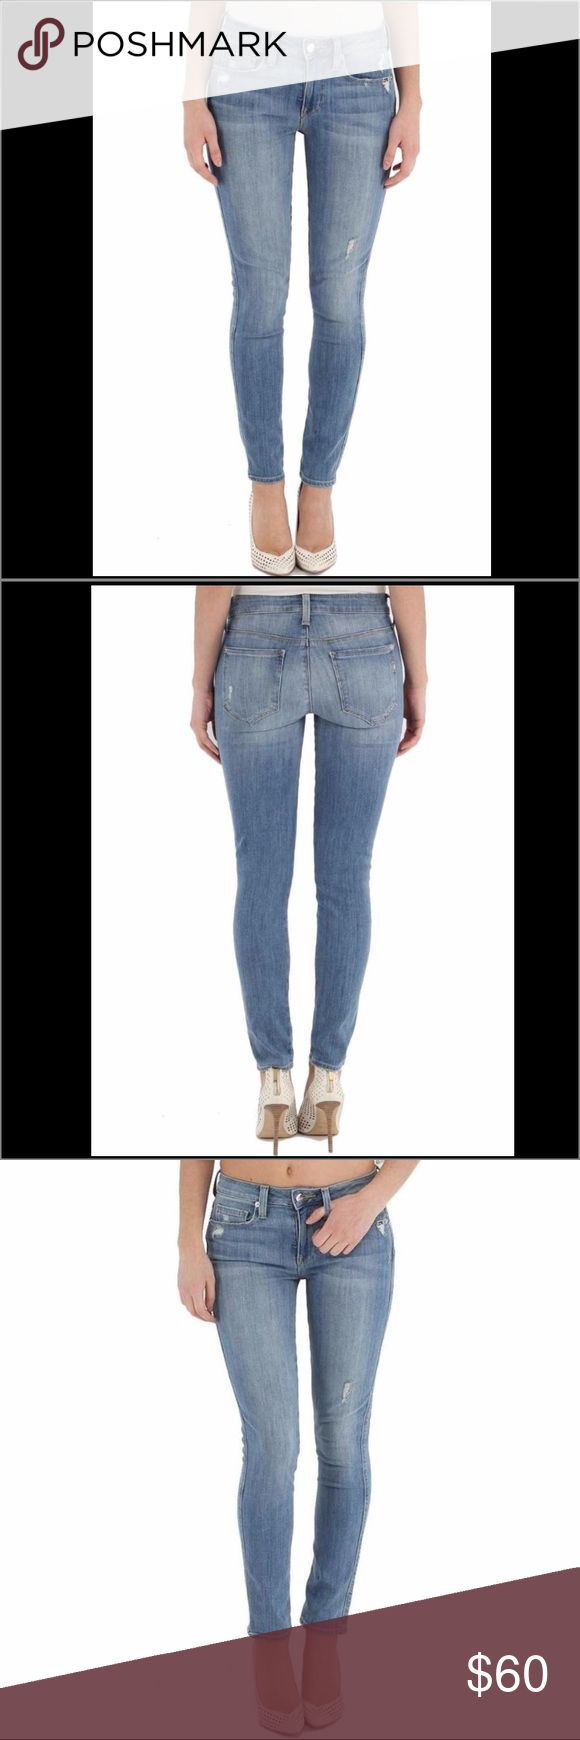 NWOTGenetic Denim solace highrise skinny crop jean These high rise skinny jeans are cropped slightly above the ankle. Crafted from super soft stretch fabric in a medium blue wash with slight distressing at the front pockets and thighs.         Measurements: approx: 9″ front rise, and 28″ inseam.                 New without tags. Genetic Denim Jeans Skinny